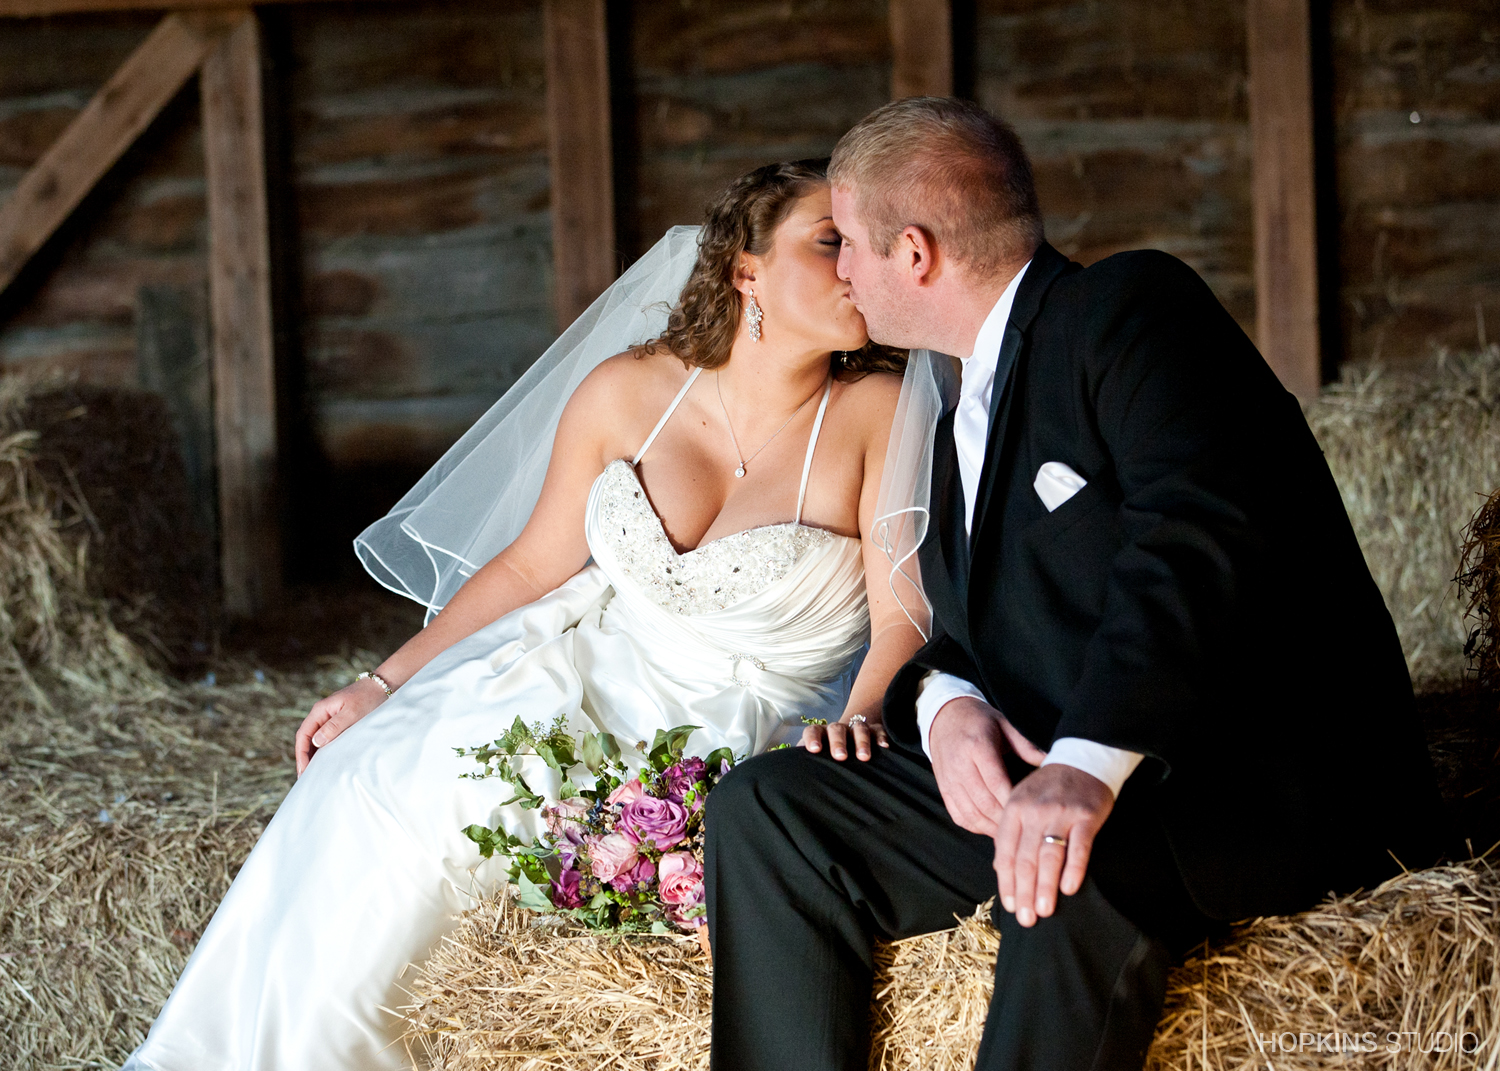 Wedding-Photography-Vineland-Center-Southwest-Michigan_28.jpg